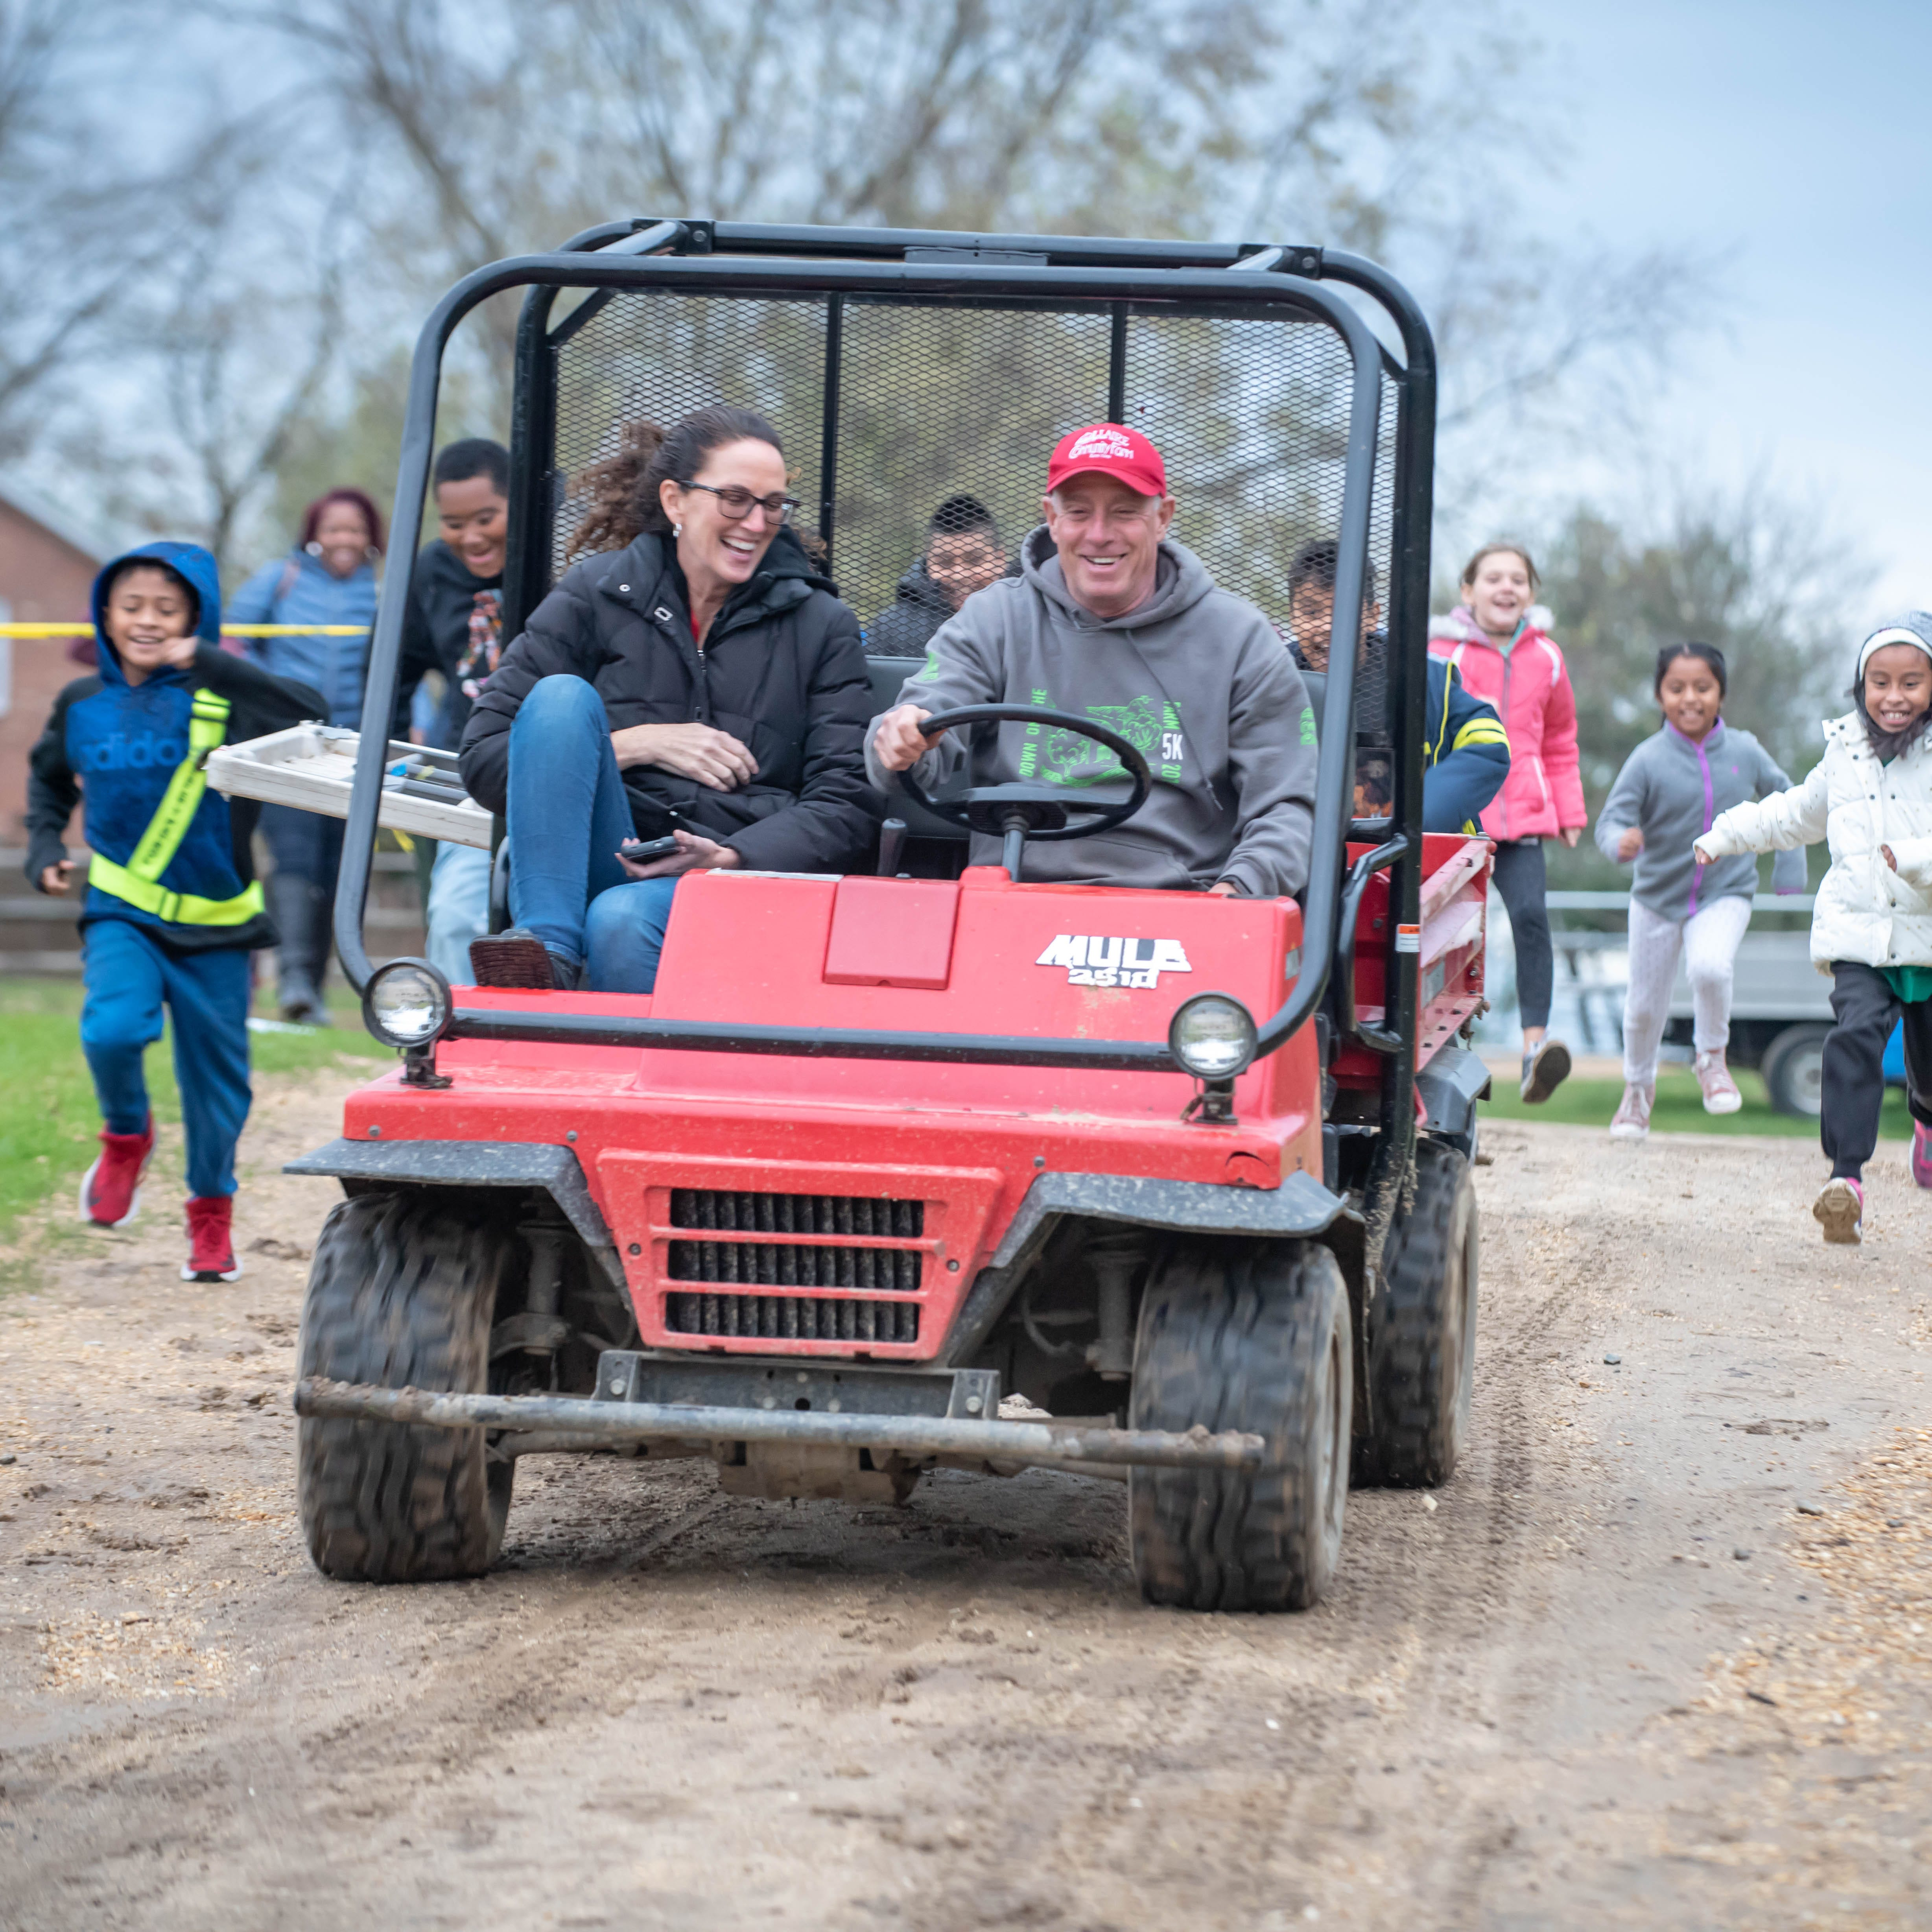 Allaire Community Farm: It takes a village, and village answered: Frank